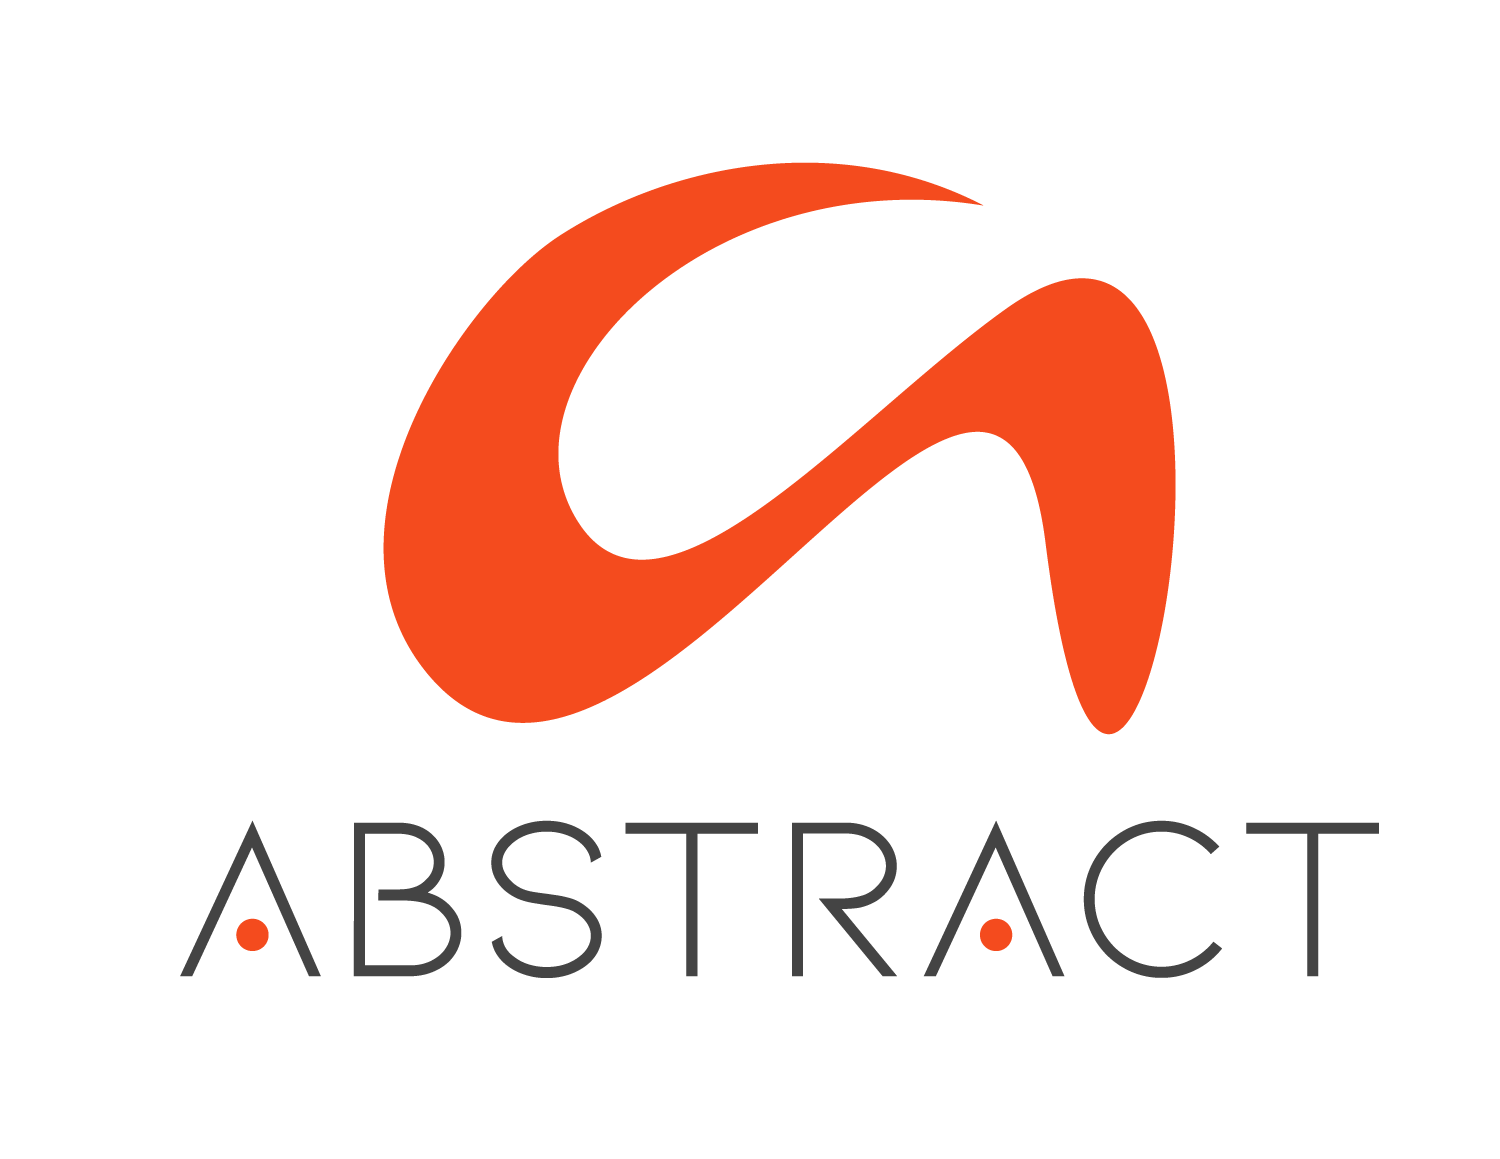 AbstractLogo.png